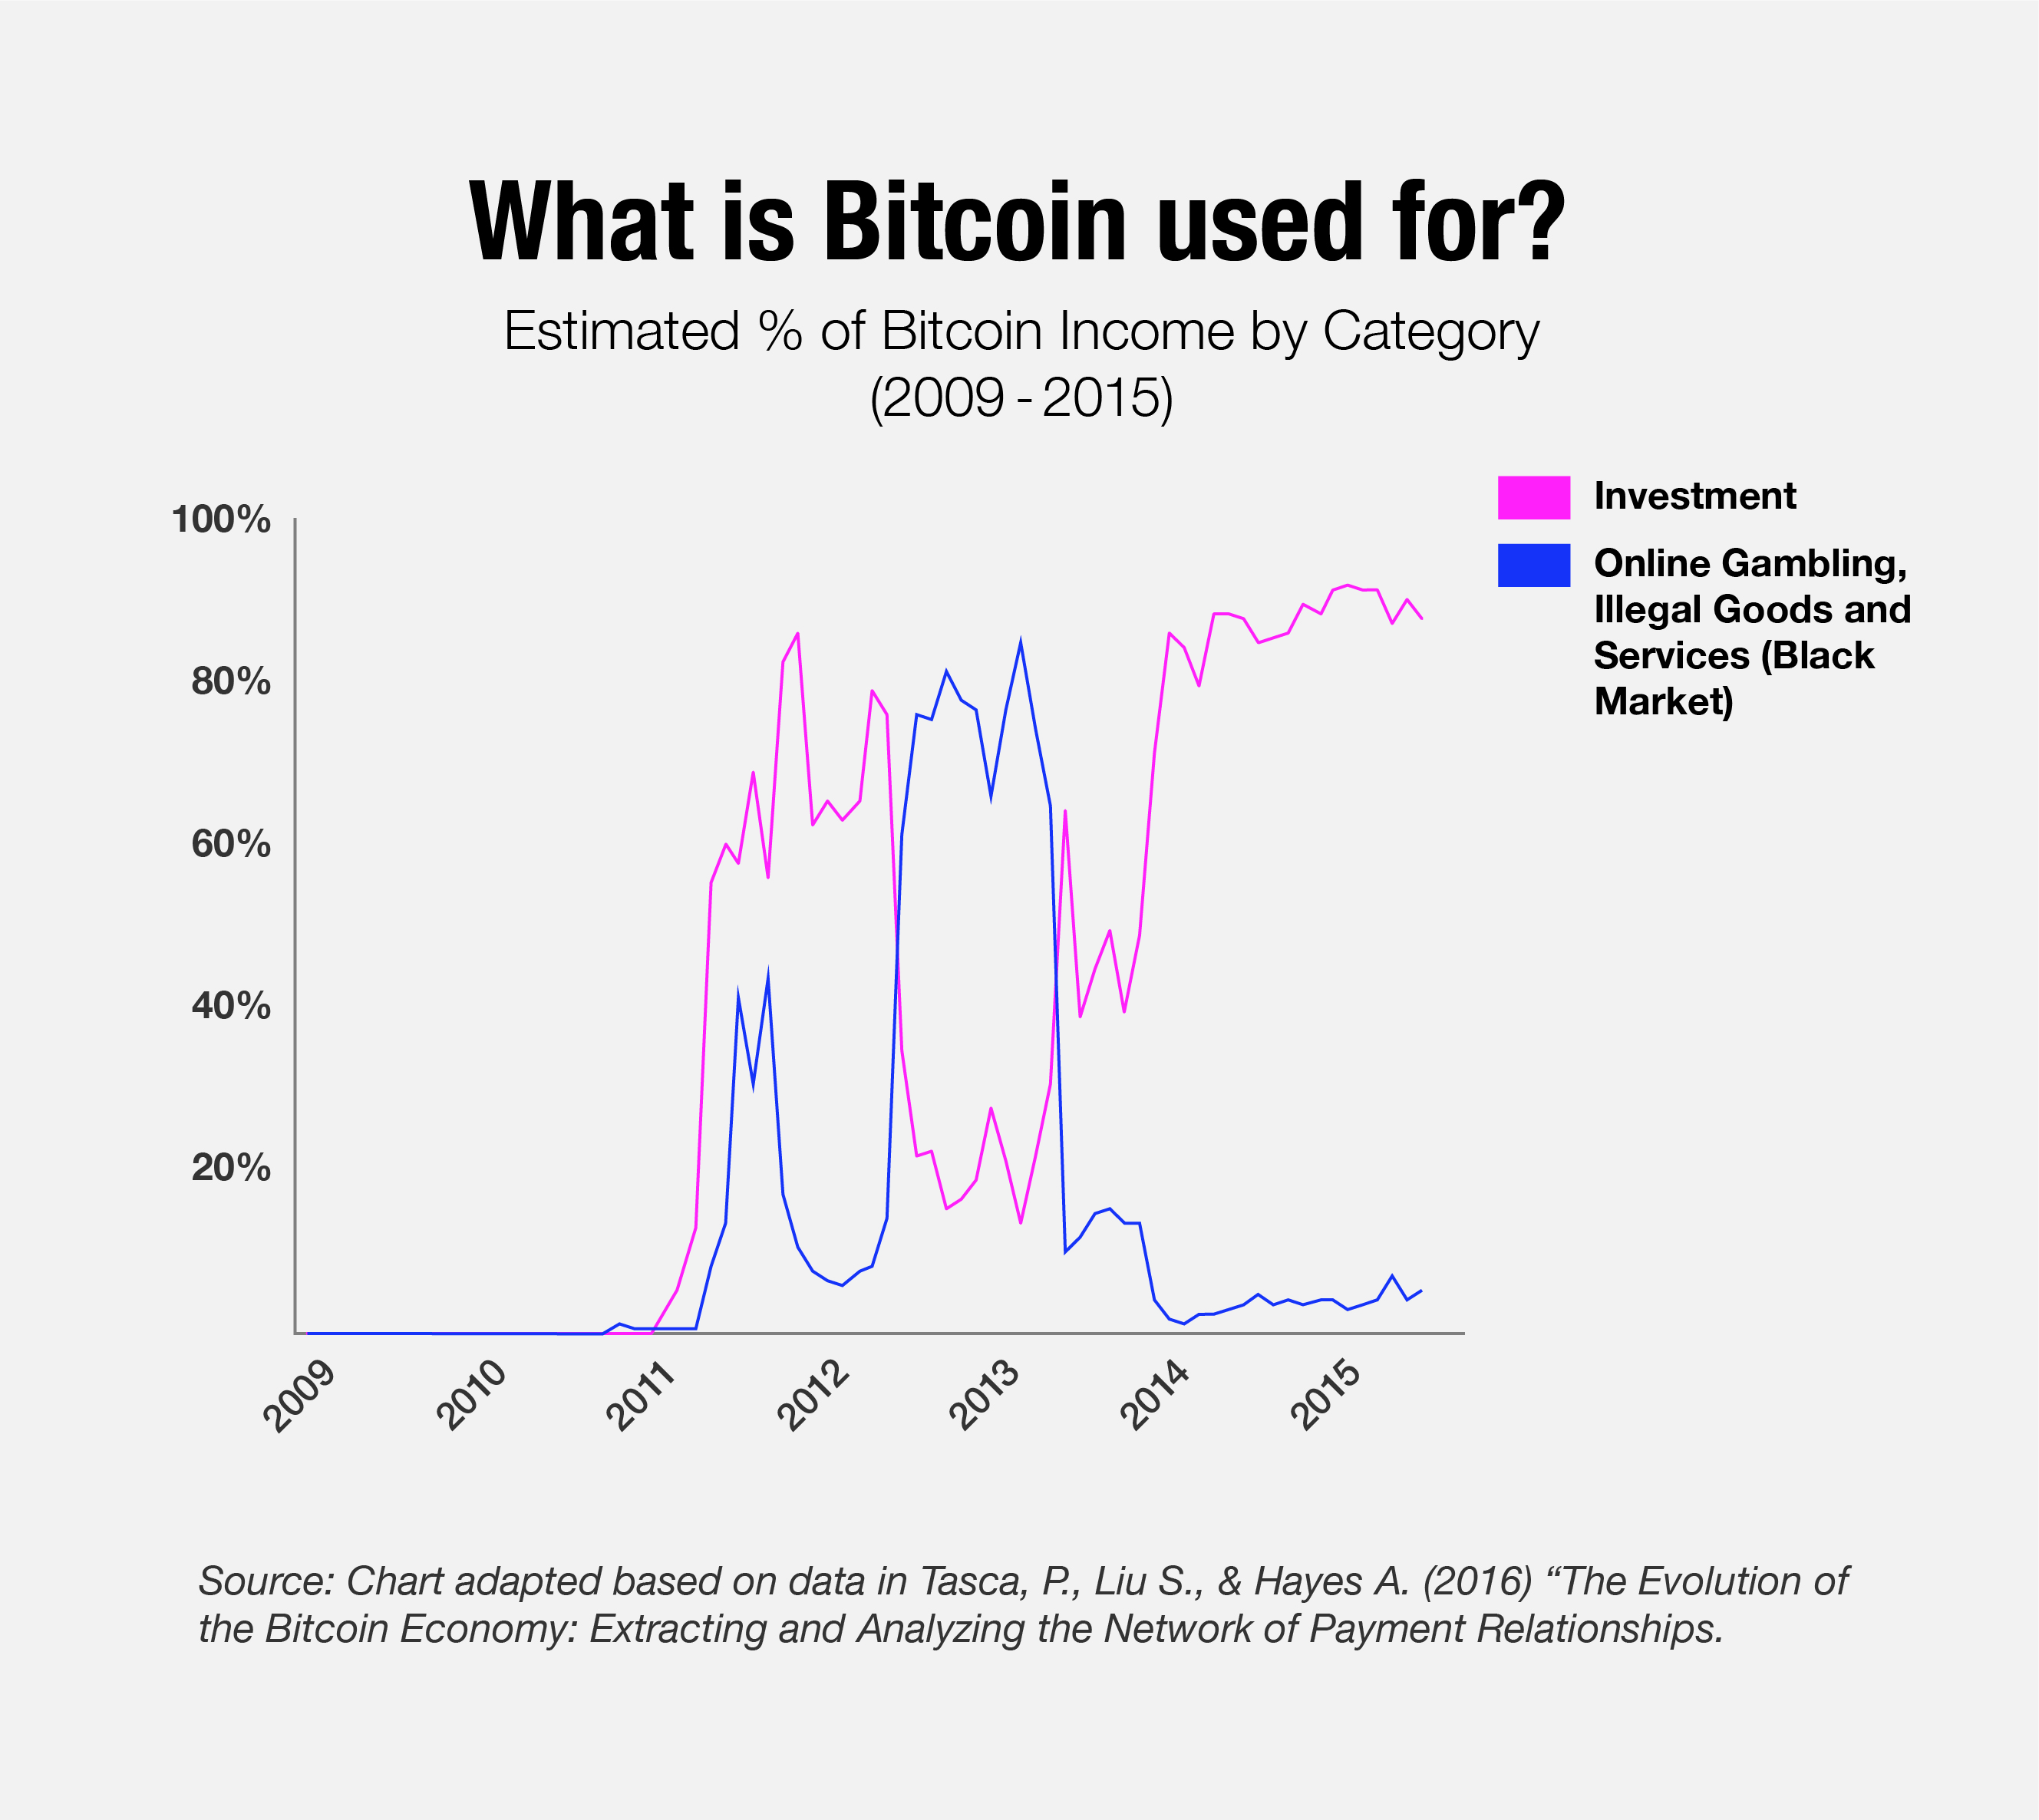 What Is Bitcoin Used For?